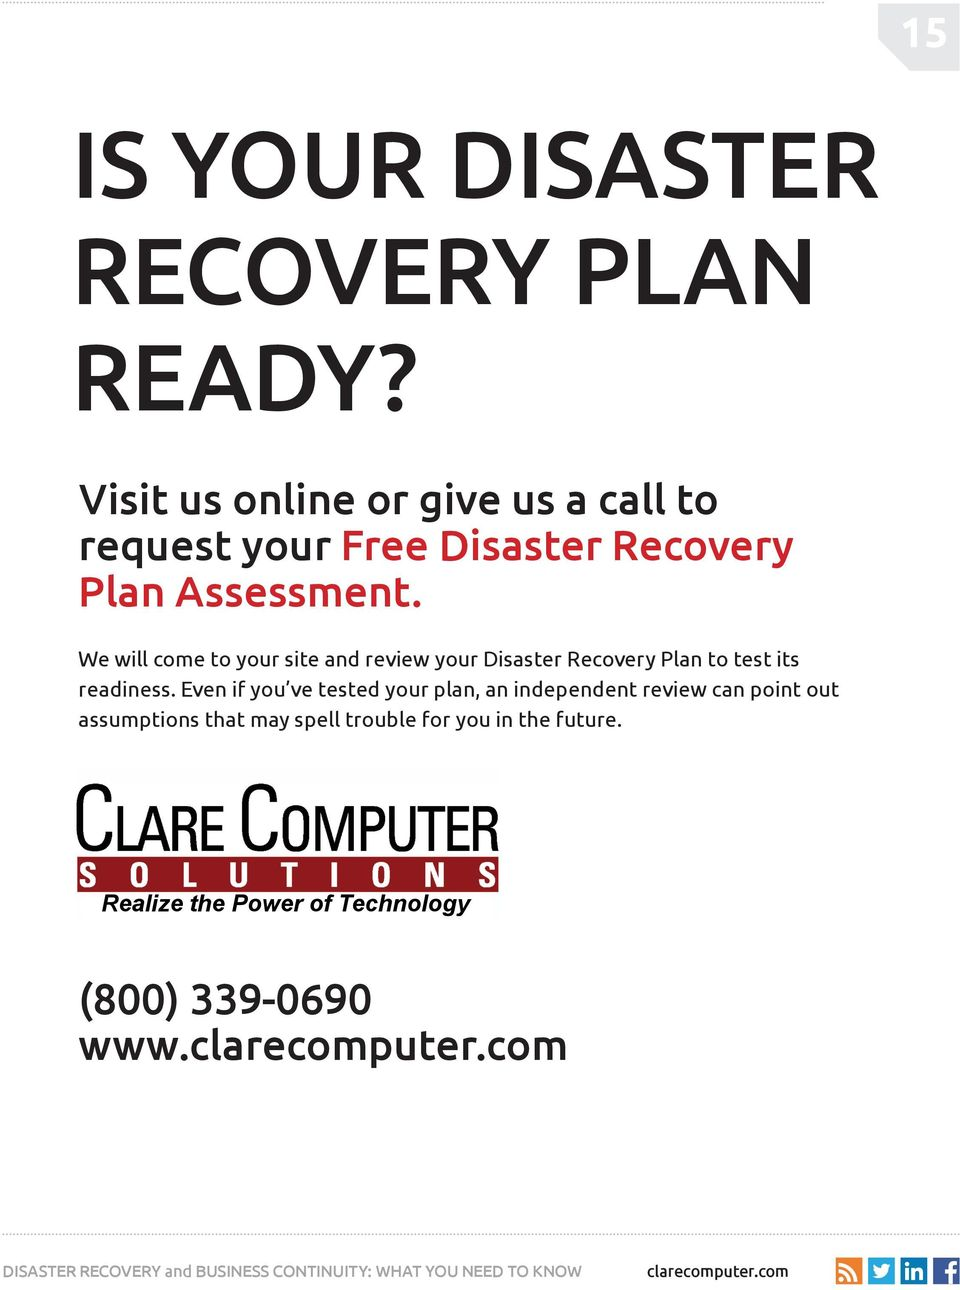 We will come to your site and review your Disaster Recovery Plan to test its readiness.